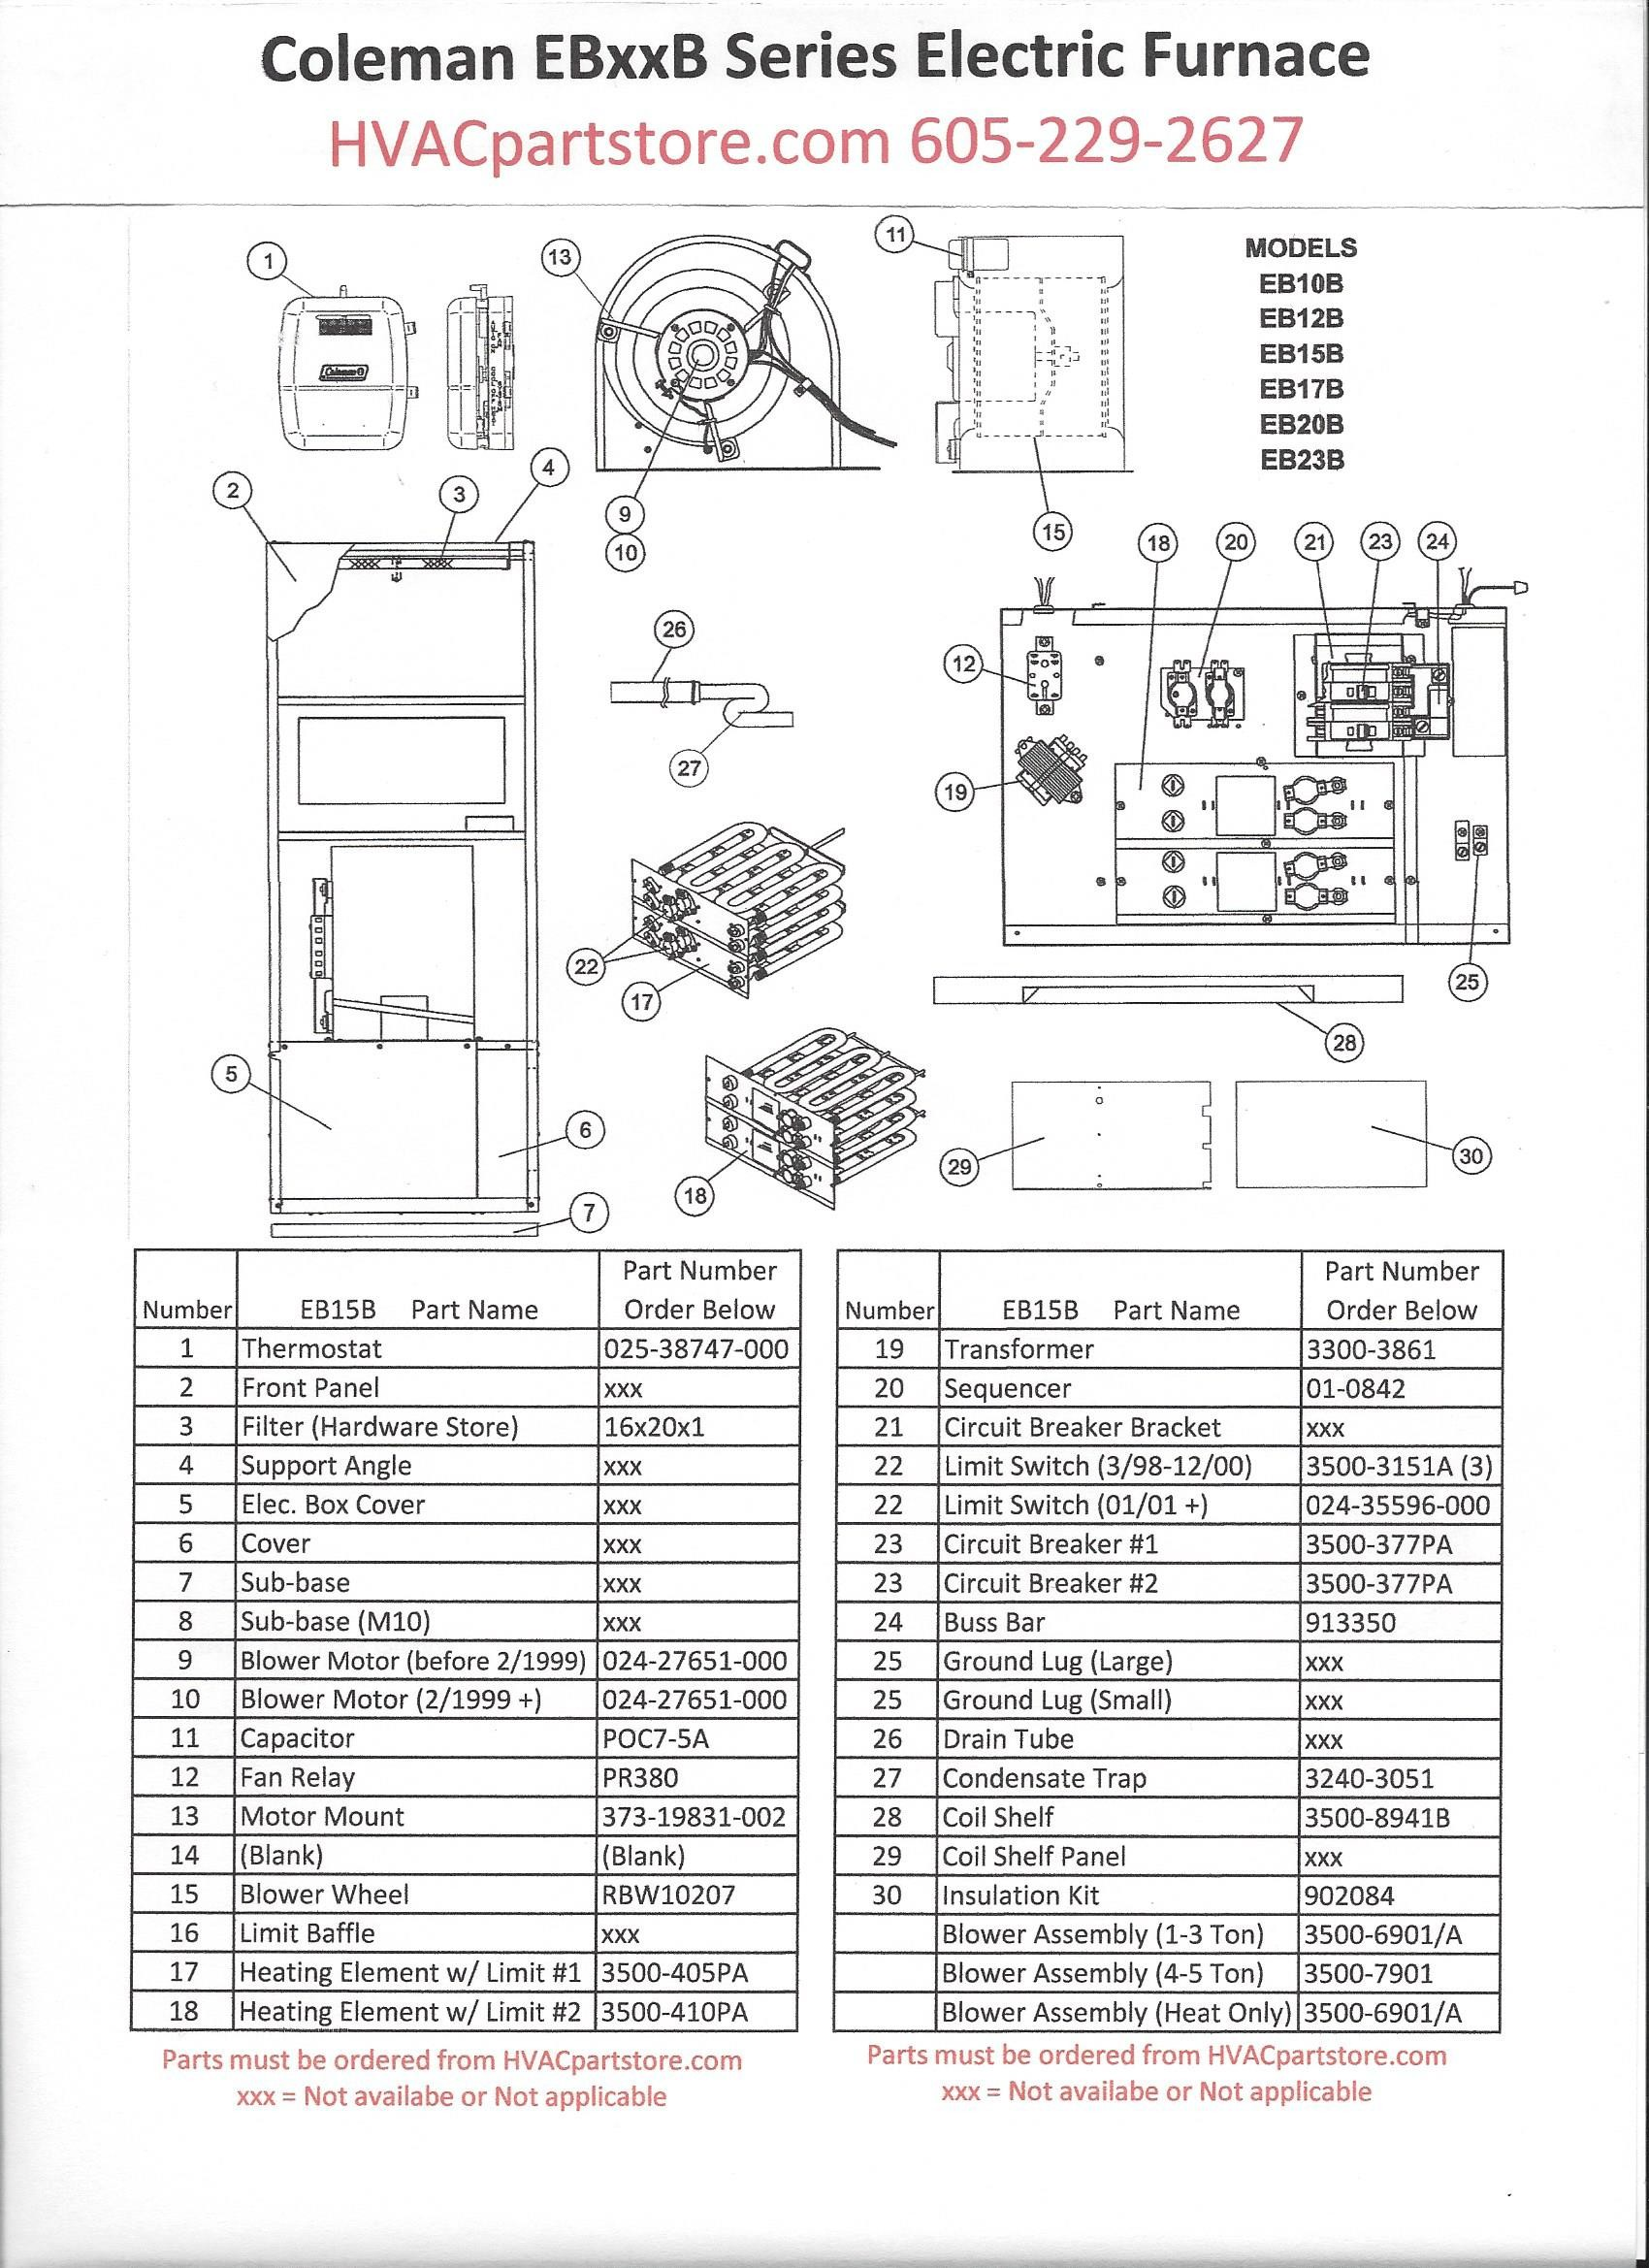 Duo therm furnace wiring diagram example electrical wiring diagram duo therm rv air conditioner wiring diagram inspirational wiring rh mainetreasurechest com dometic ac wiring diagram duo therm thermostat manual asfbconference2016 Image collections